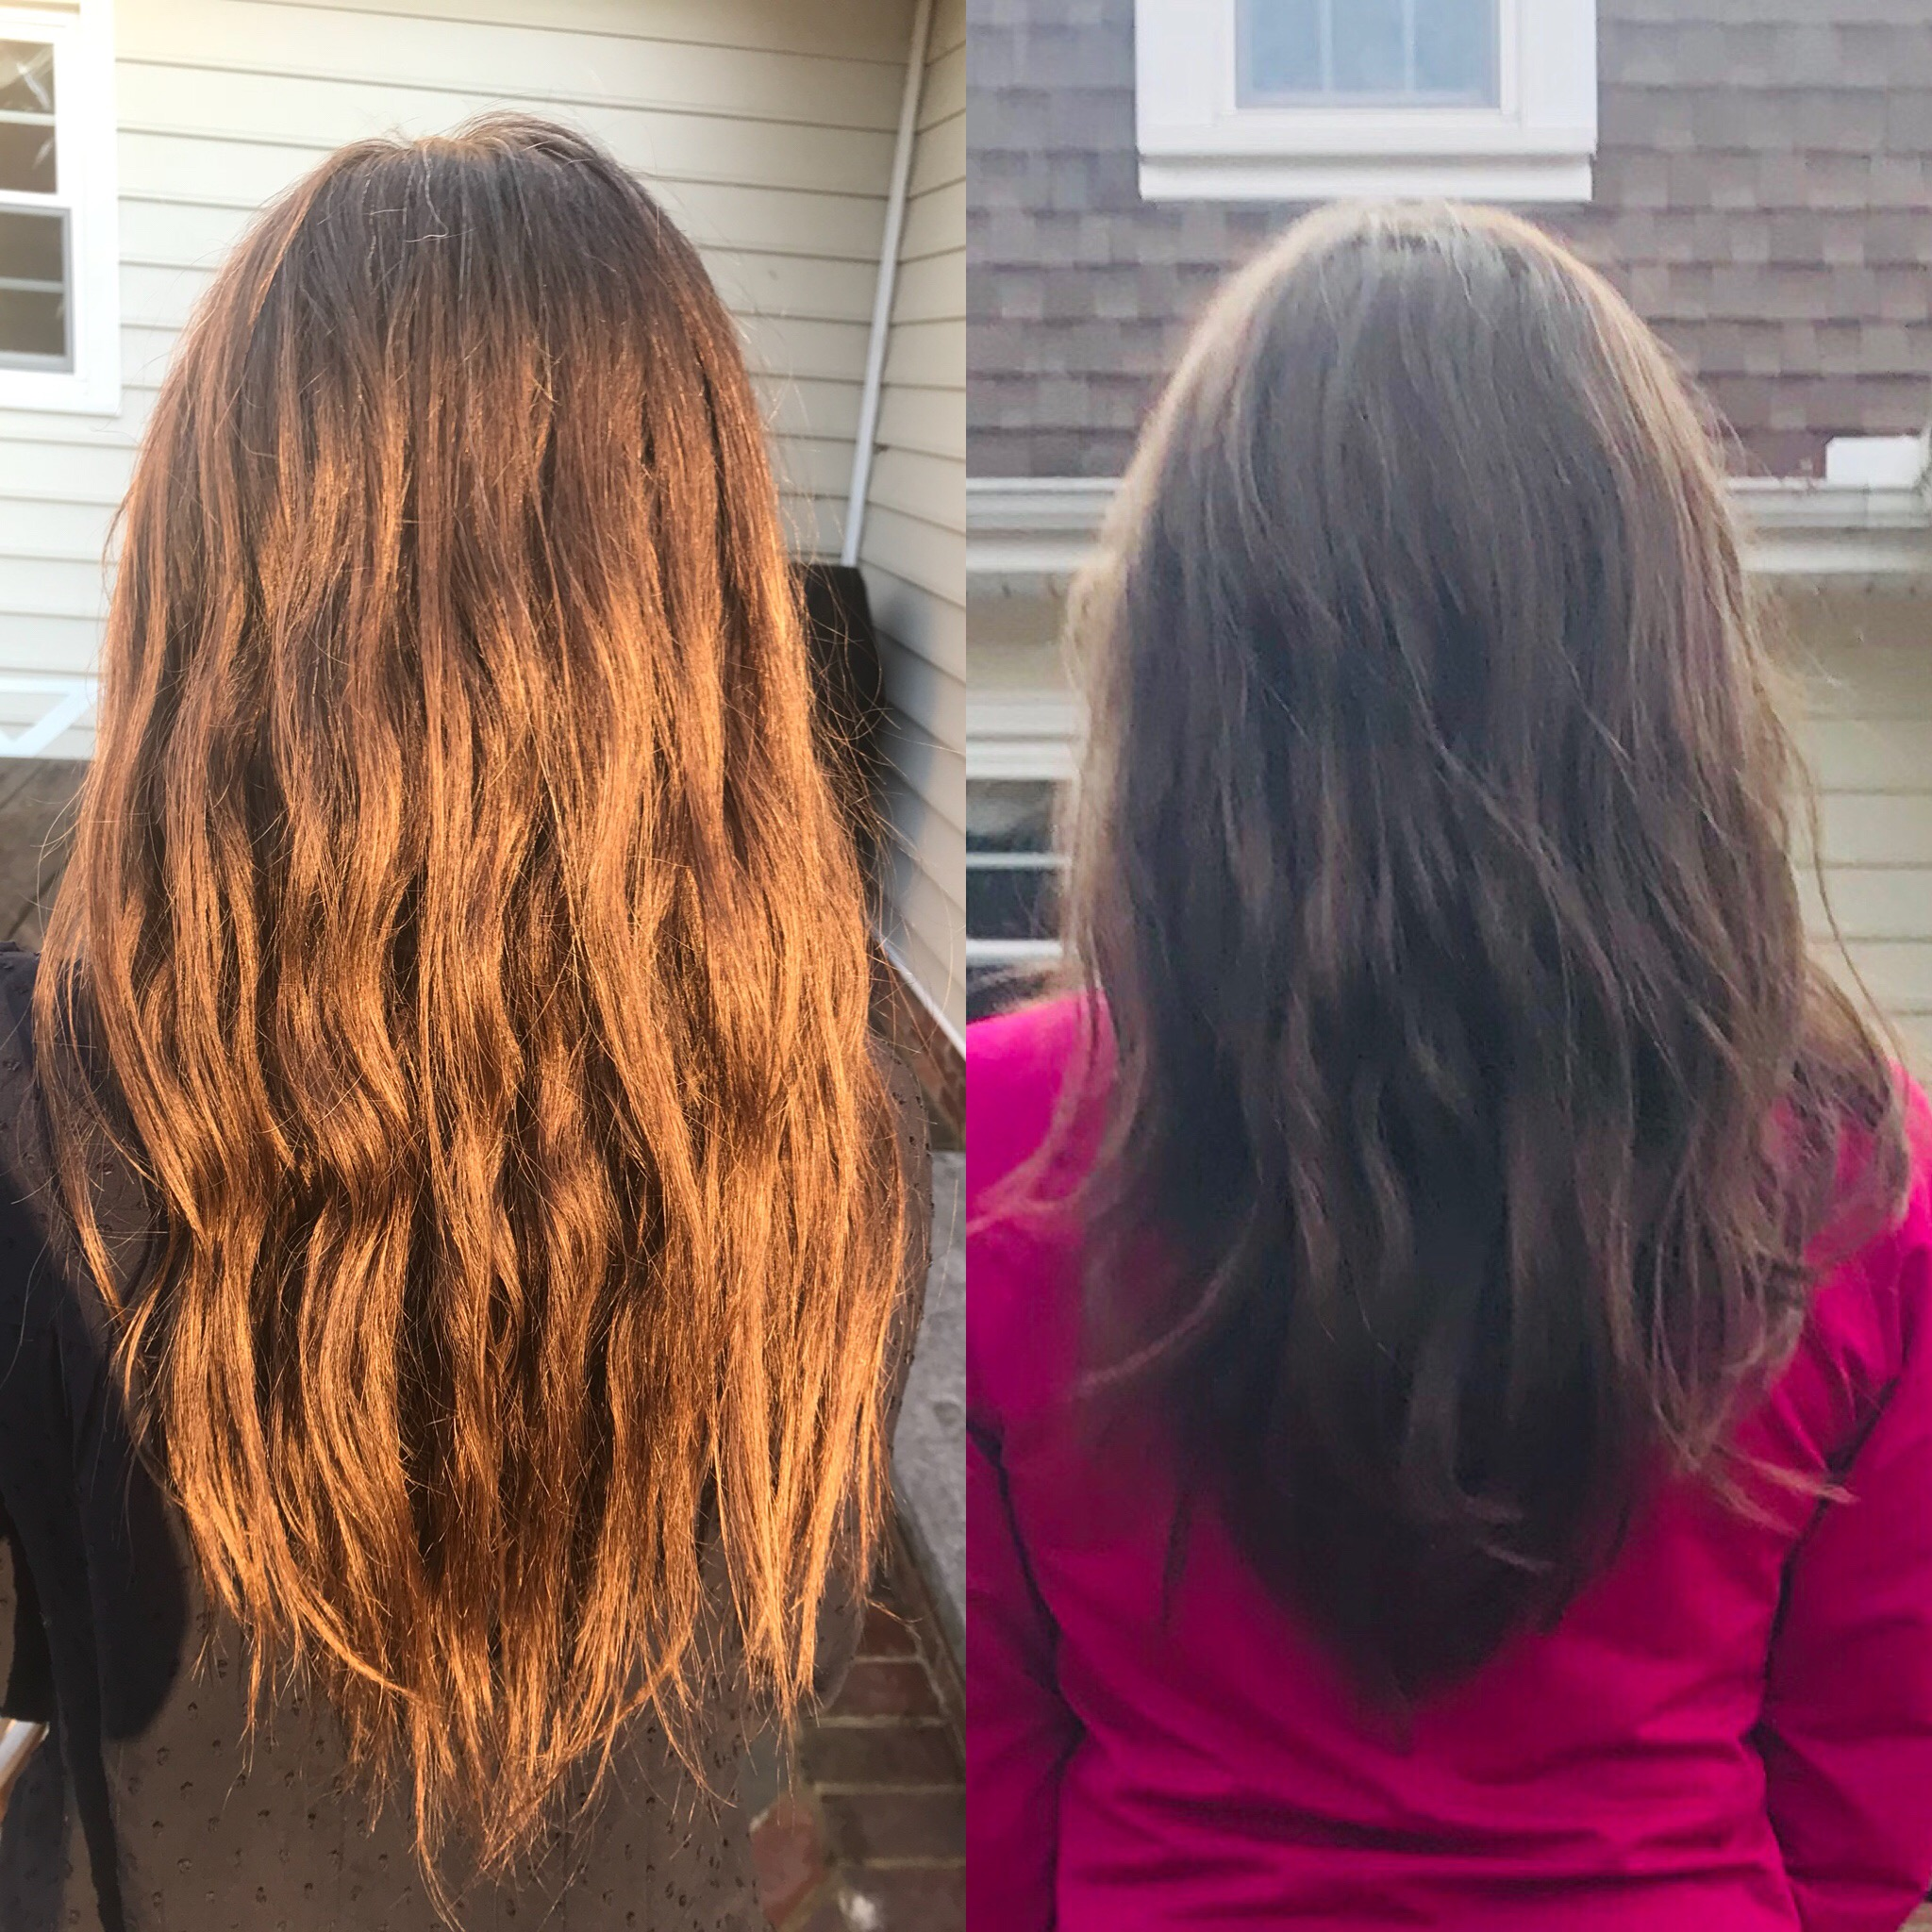 Pre and post hair cut - Both pictures are my hair with no products at all, washed with shampoo bar/conditioner bar, combed wet, then air dried.